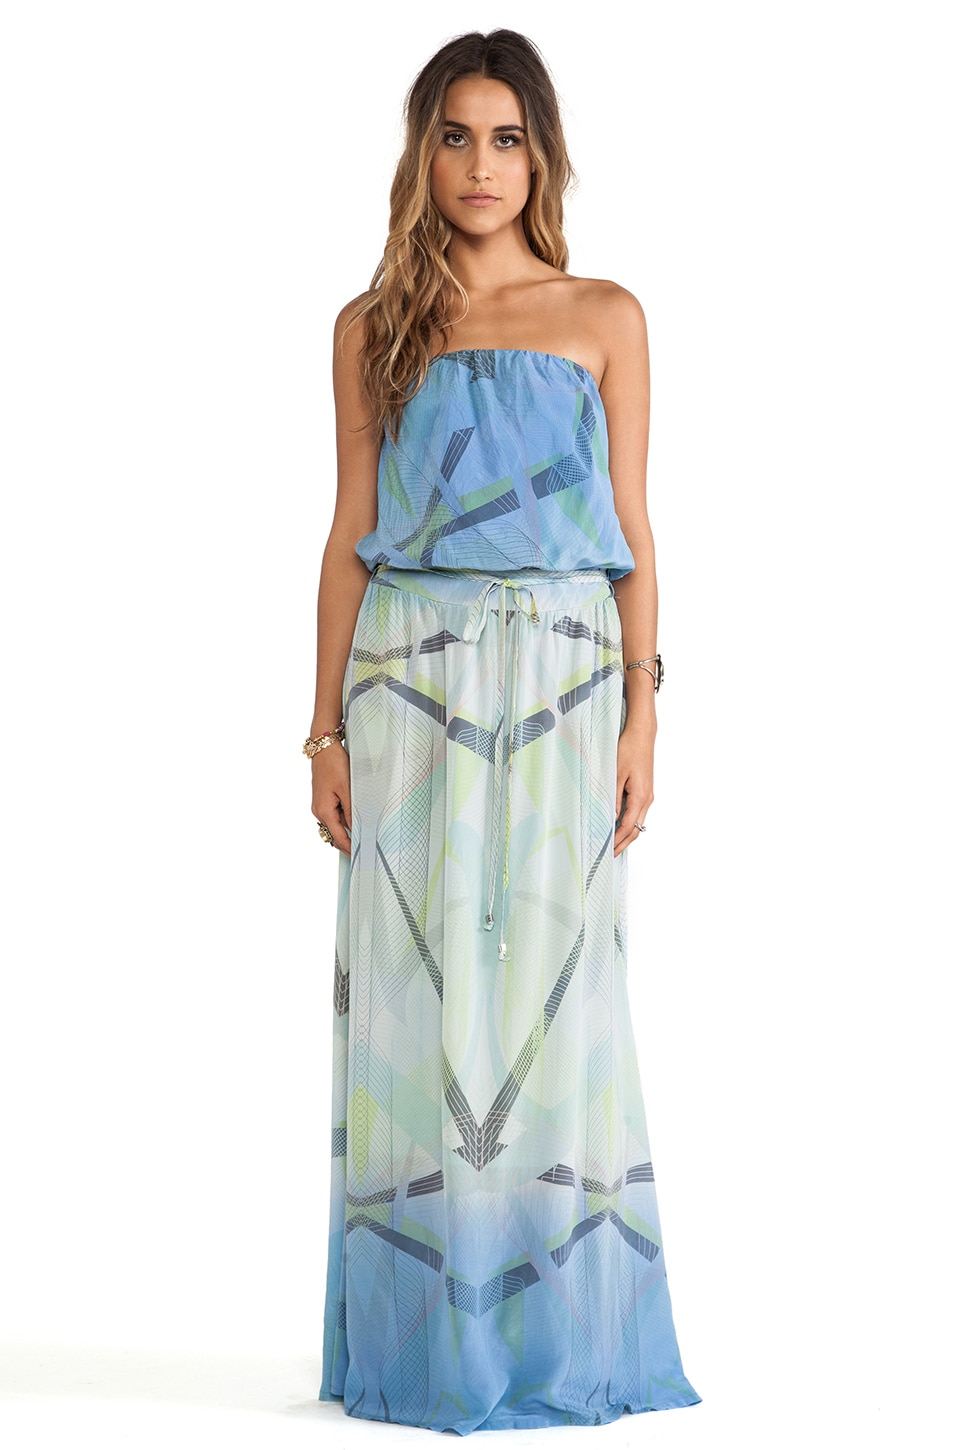 Gypsy 05 Printed Silk Tube Maxi Dress in Lavender